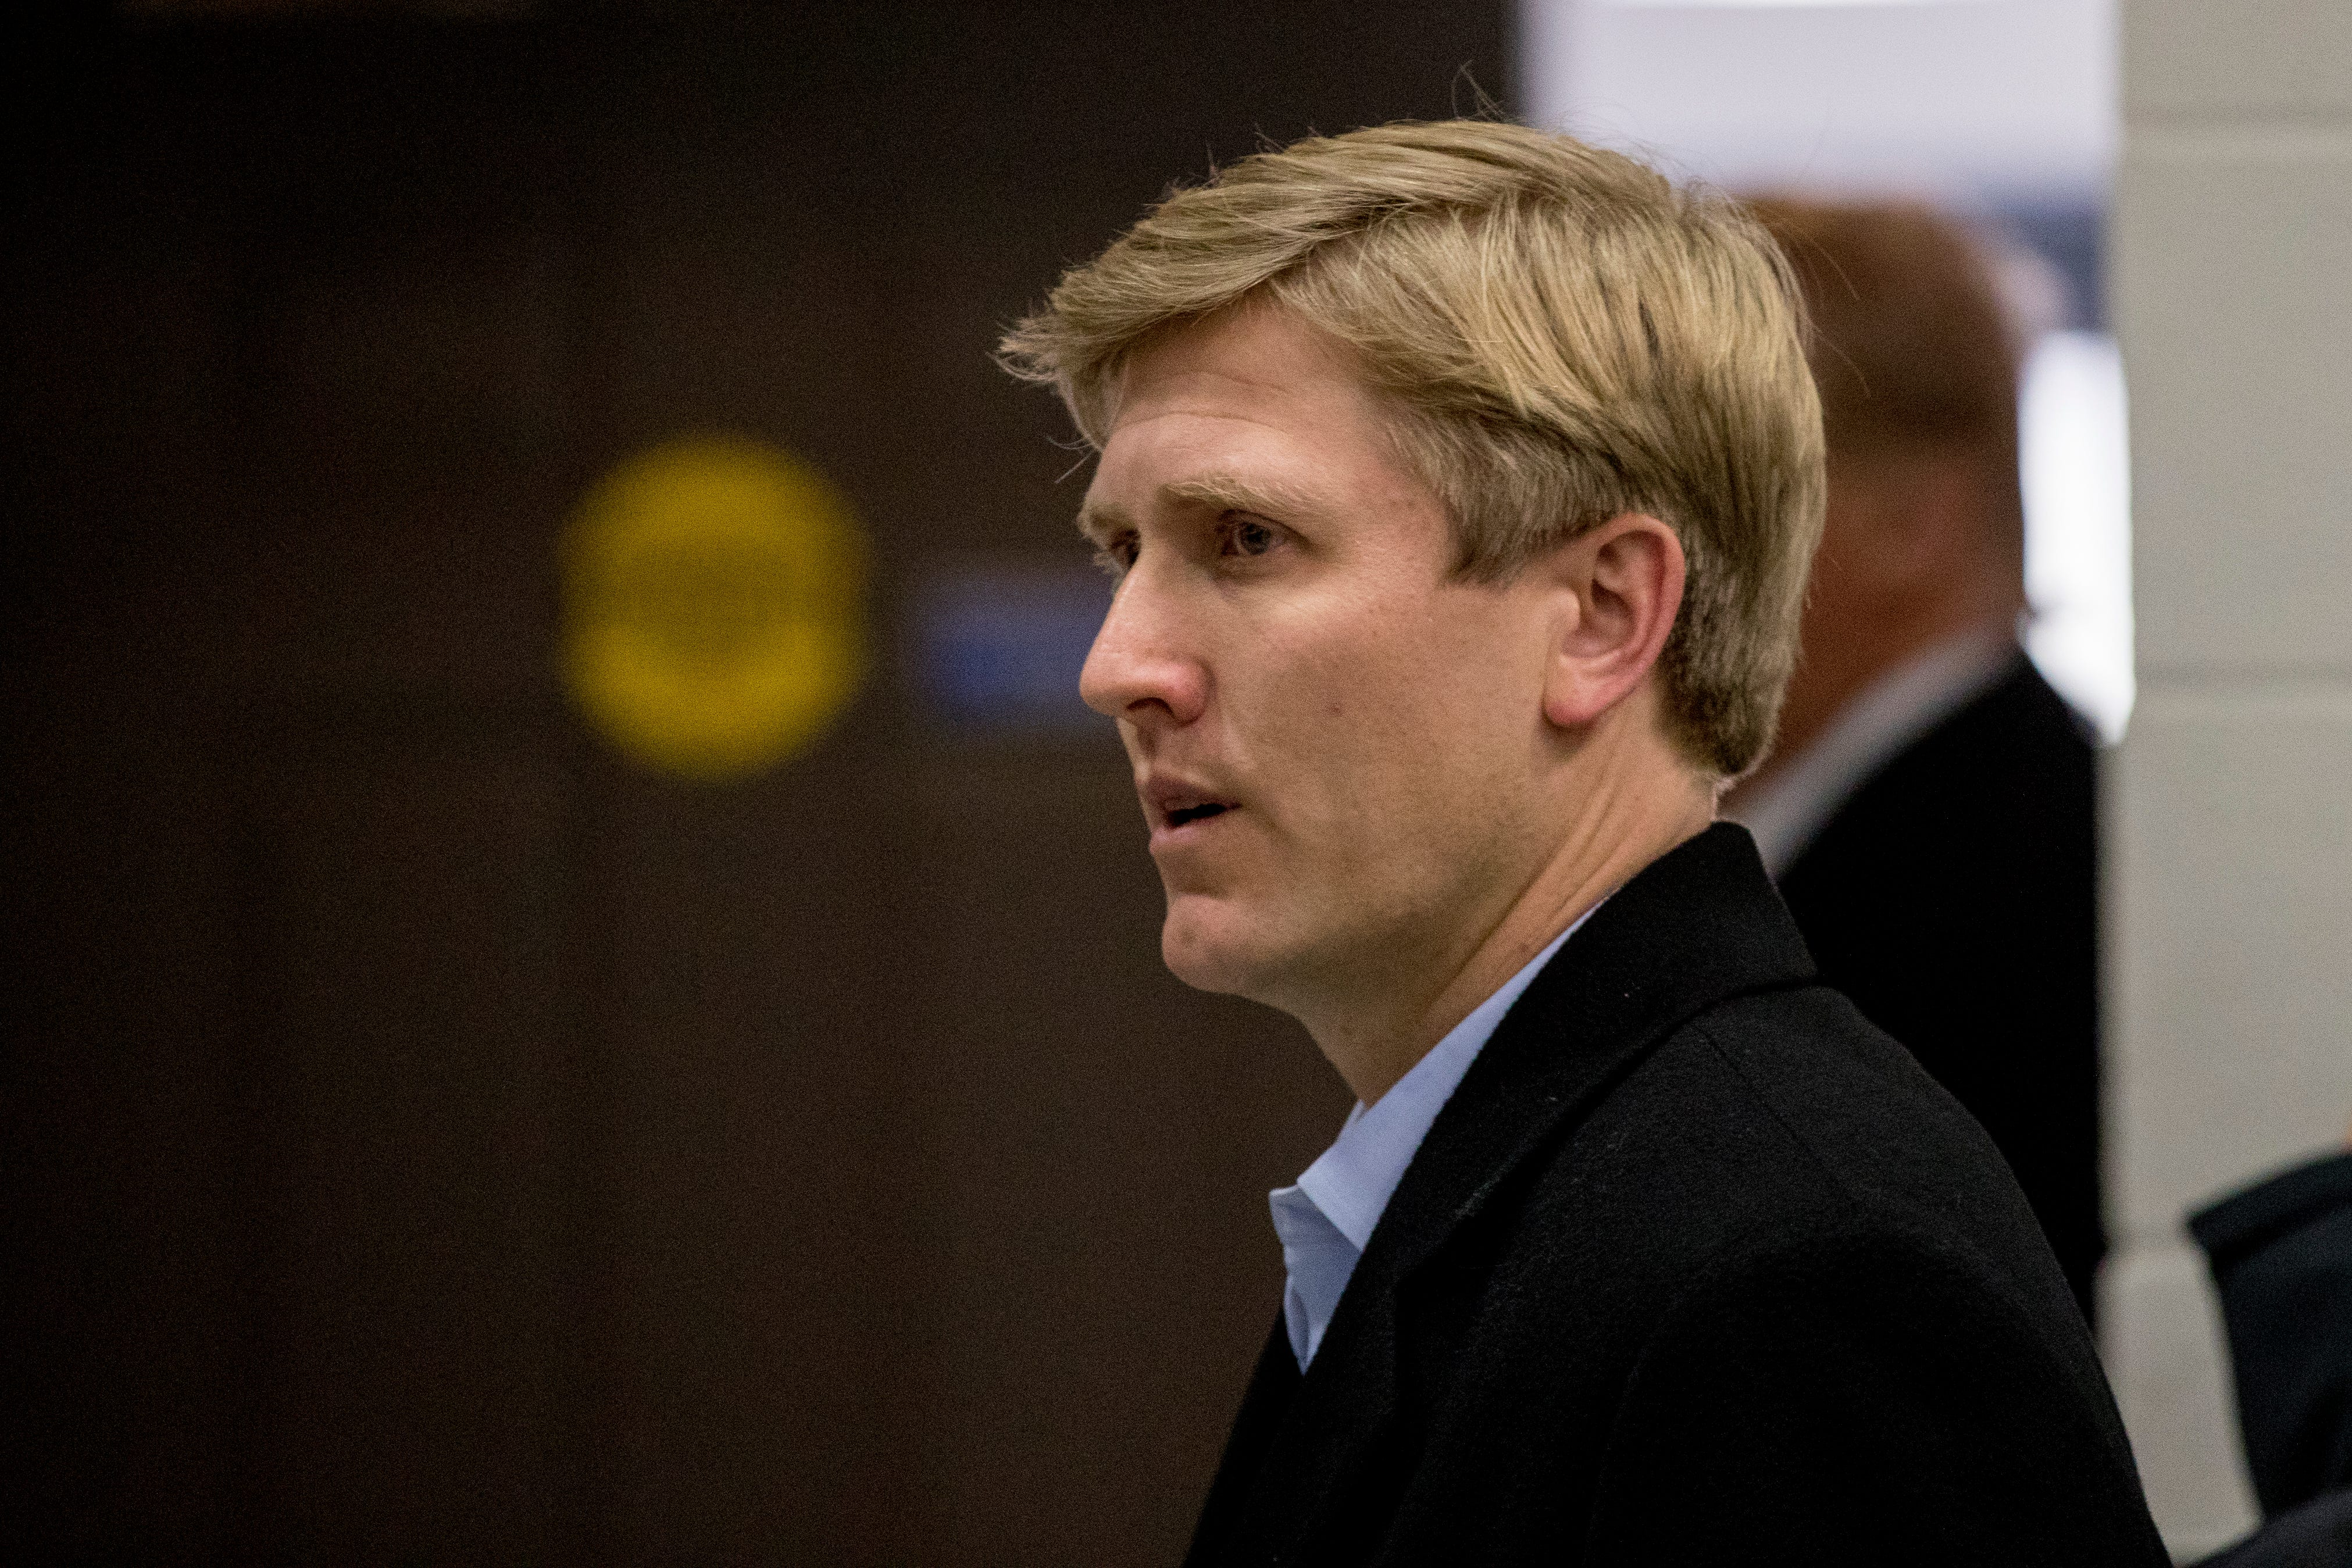 Nick Ayers out as candidate to become President Donald Trump's next chief of staff